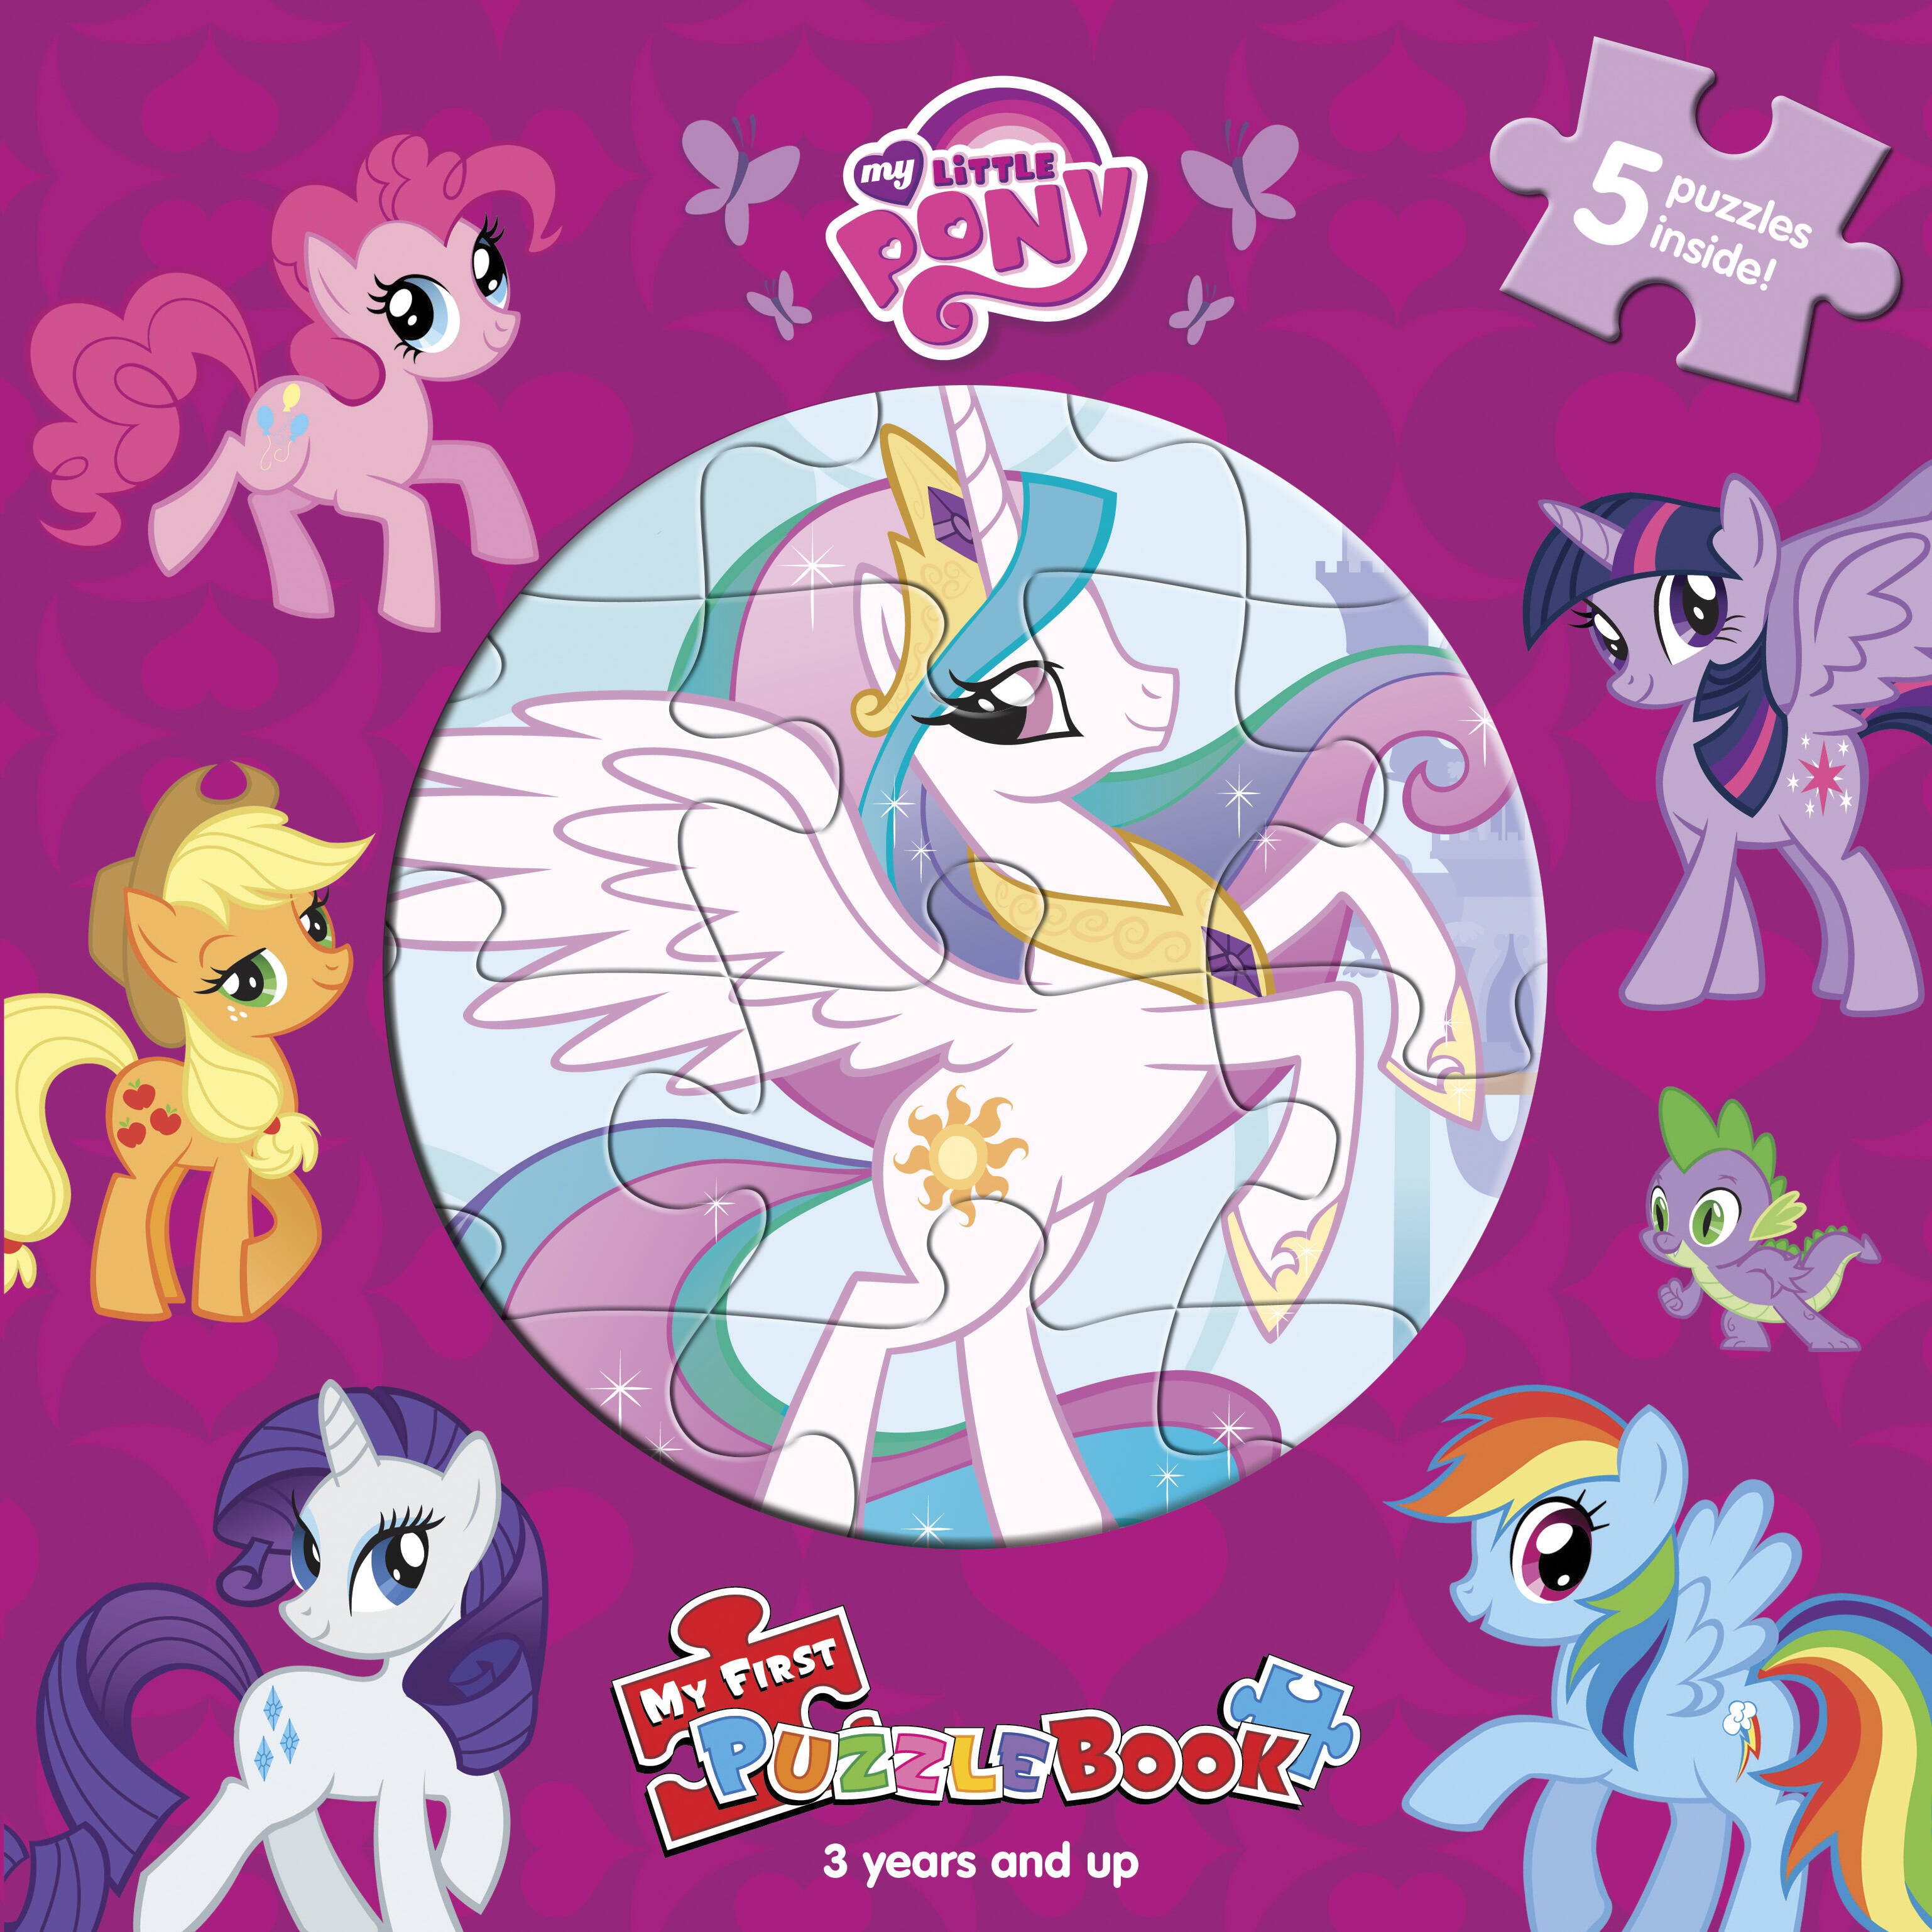 My First Puzzle Book - My Little Pony